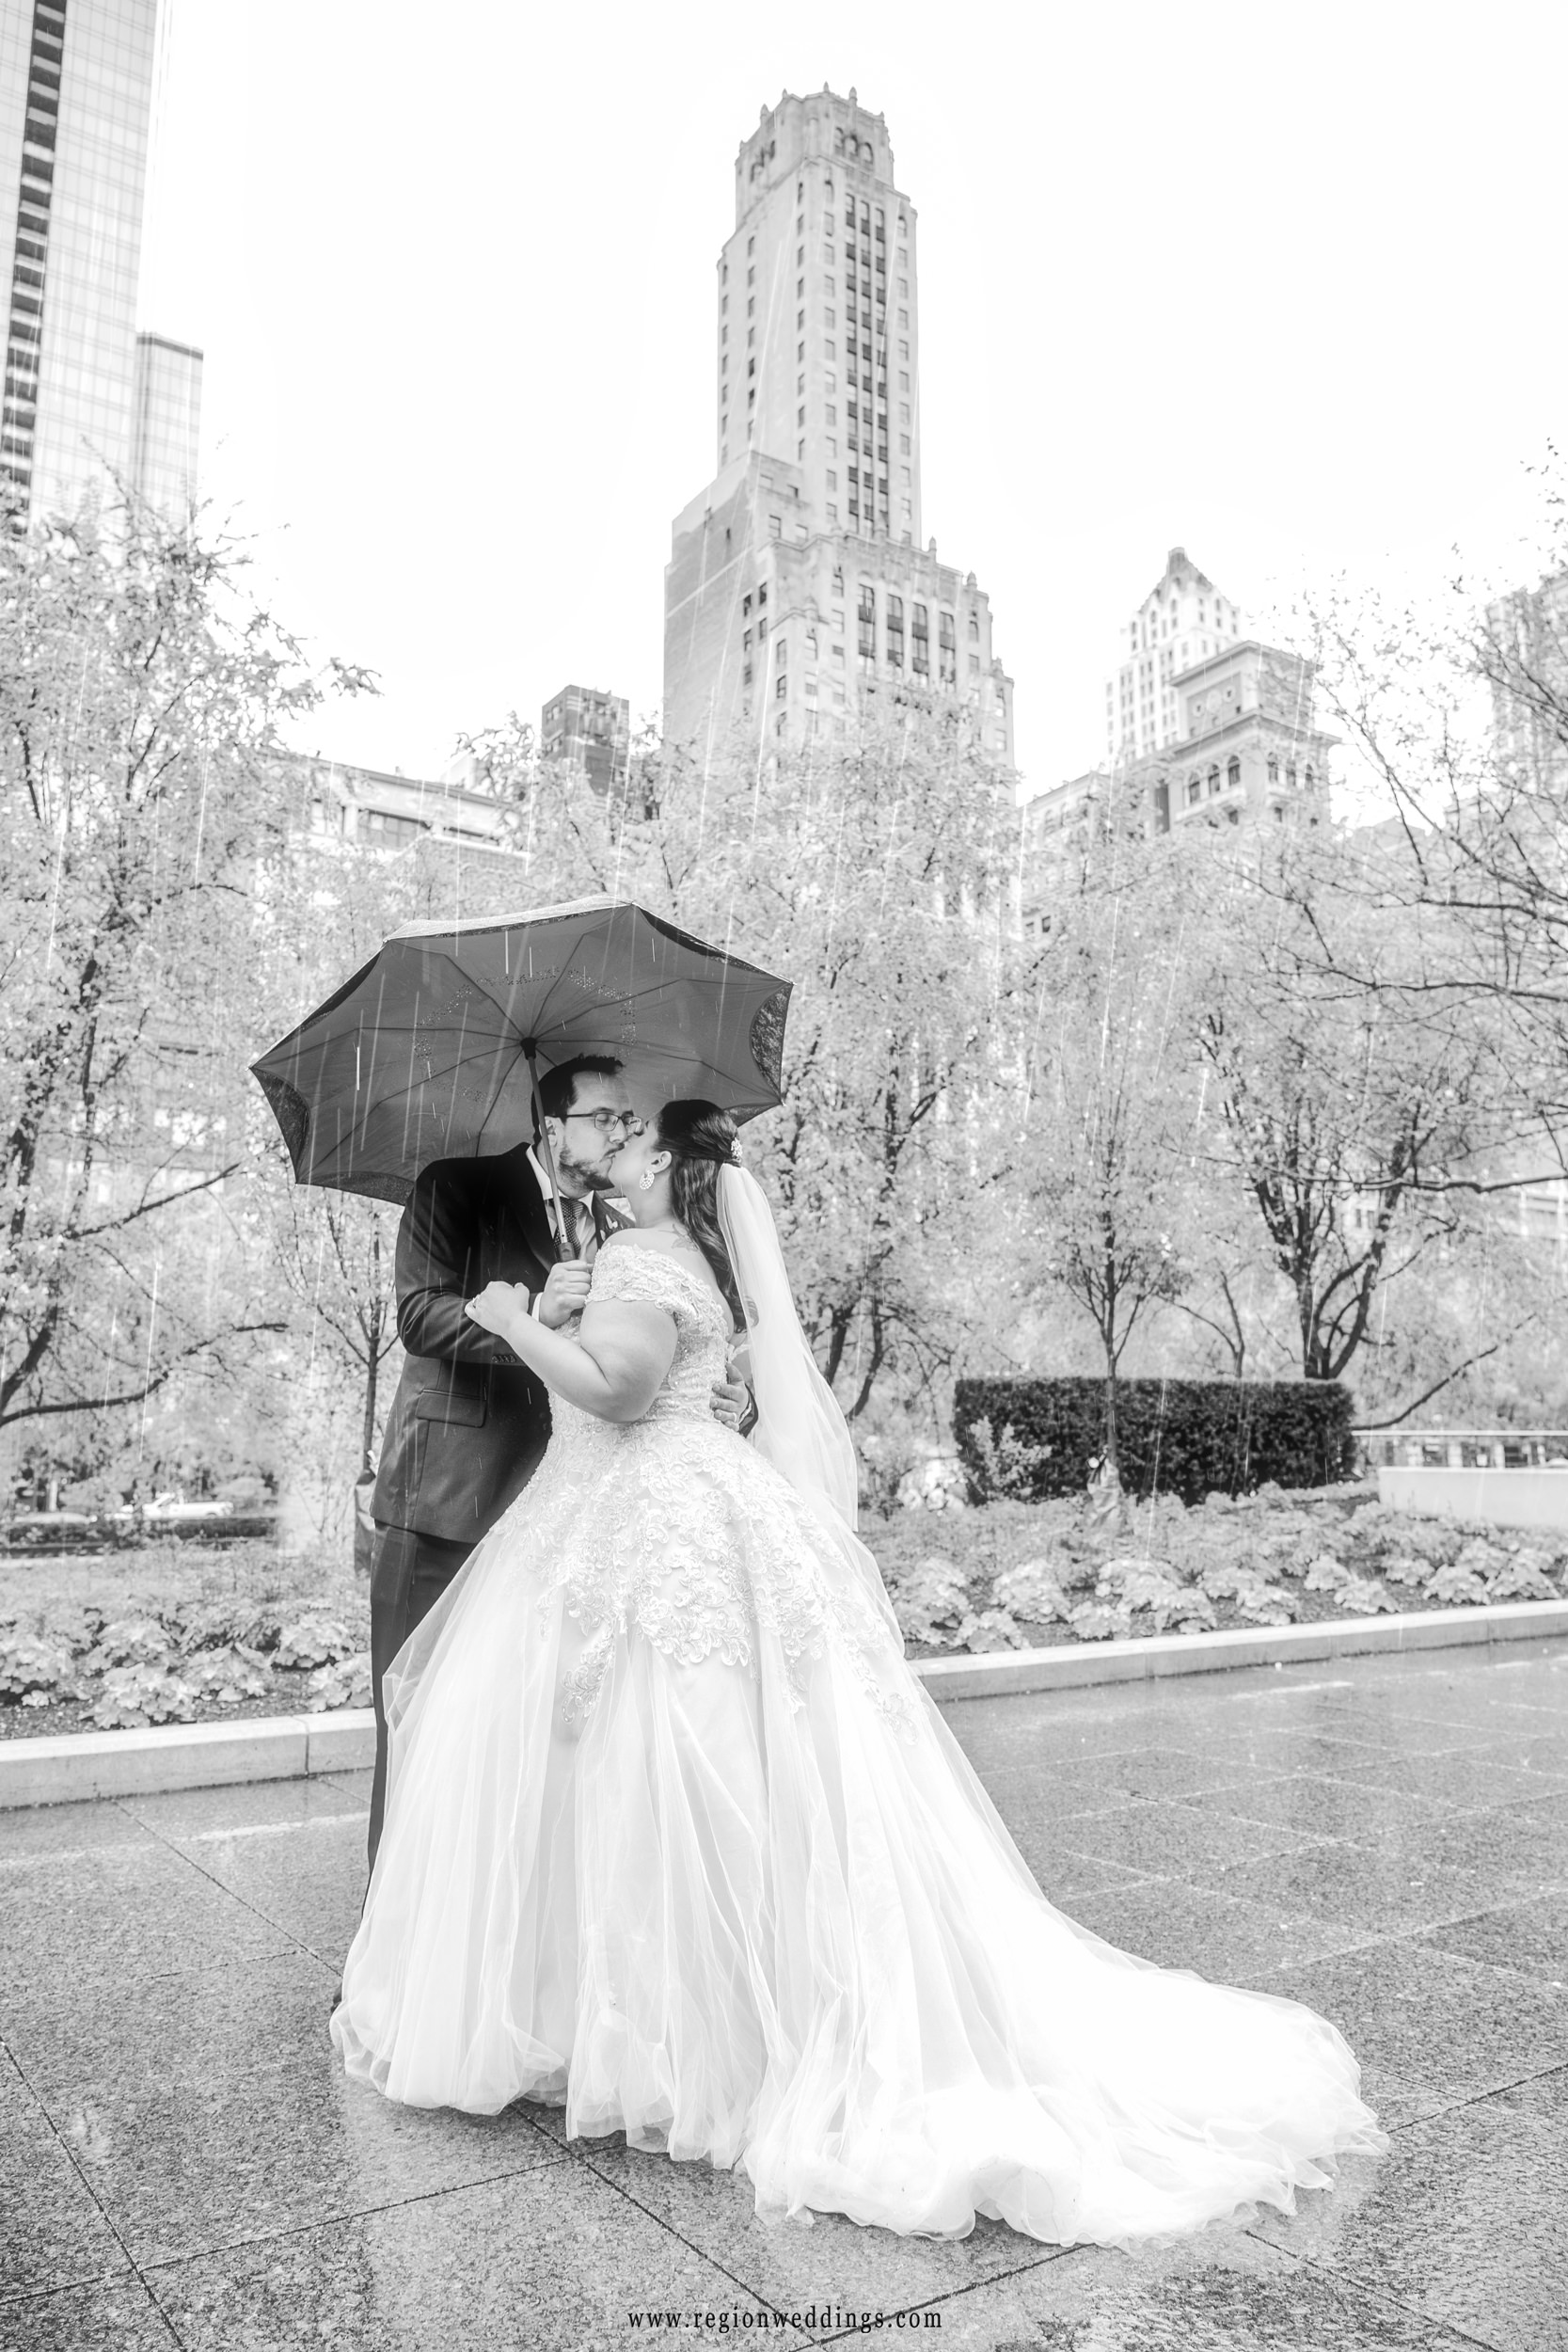 Bride and groom kiss under an umbrella as rain falls in downtown Chicago.